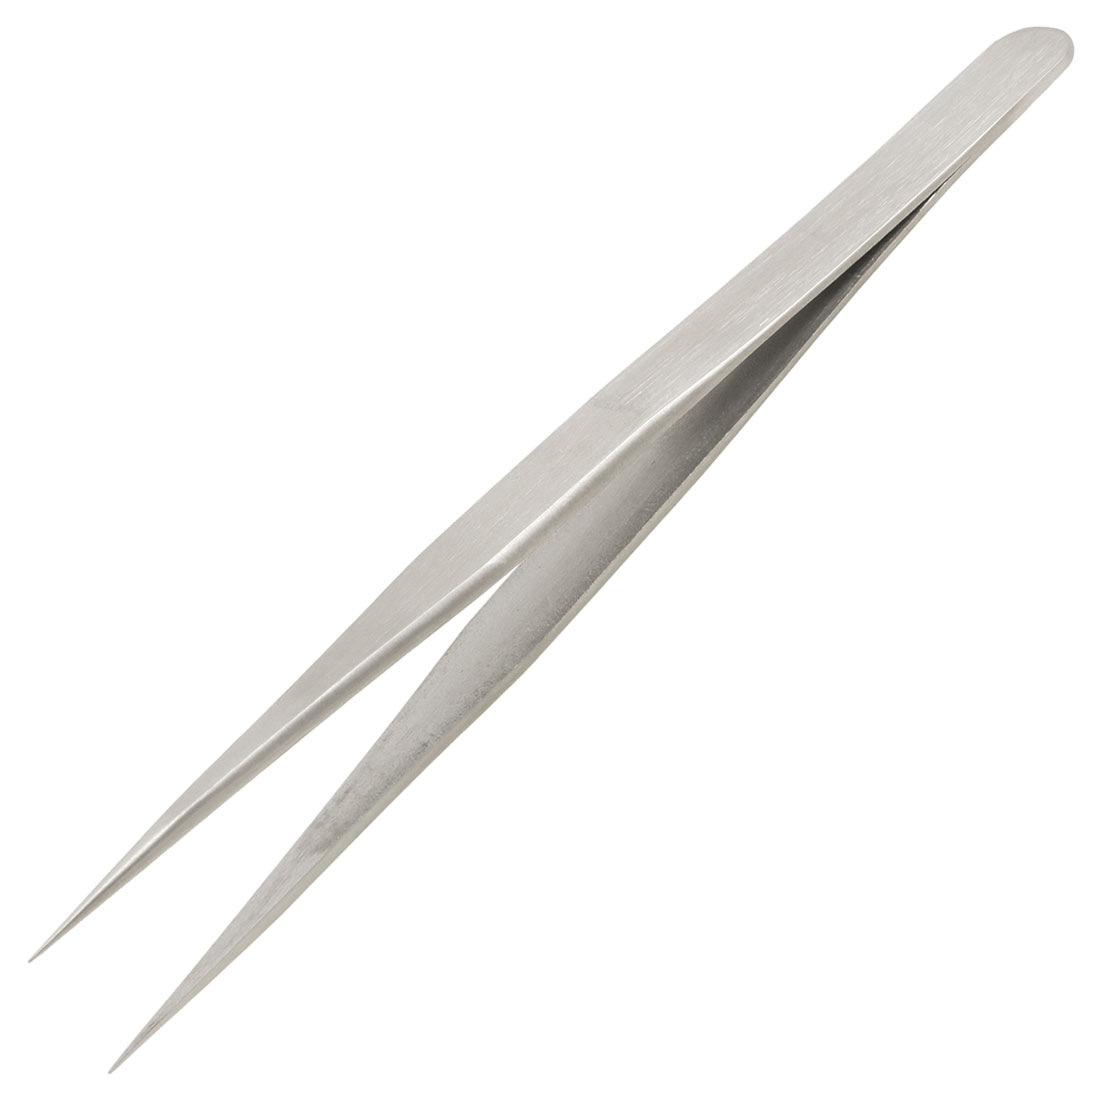 13cm Length Silver Tone Pointed Tip Straight Tweezer Repair Tool